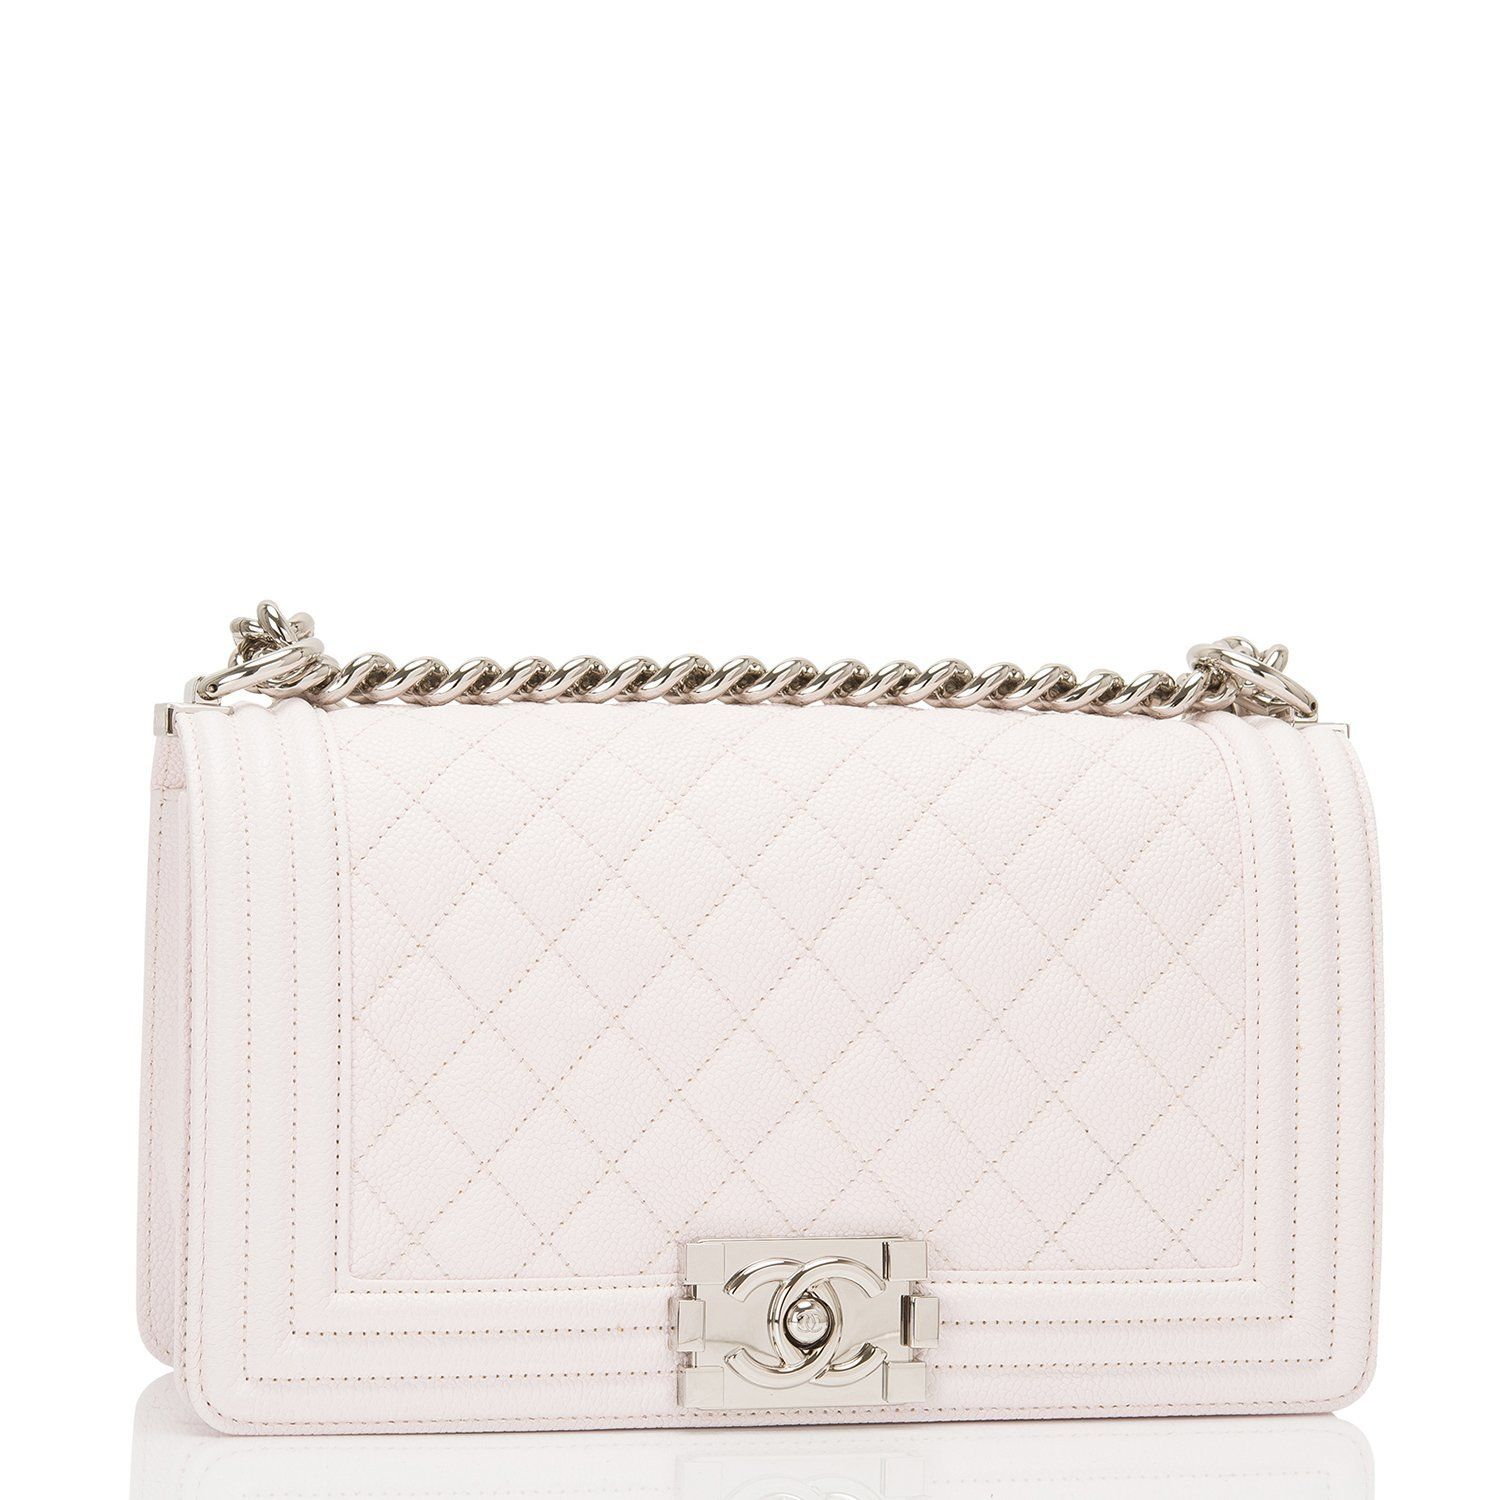 f17ff5a75976 Chanel White Caviar Quilted Medium Boy Bag